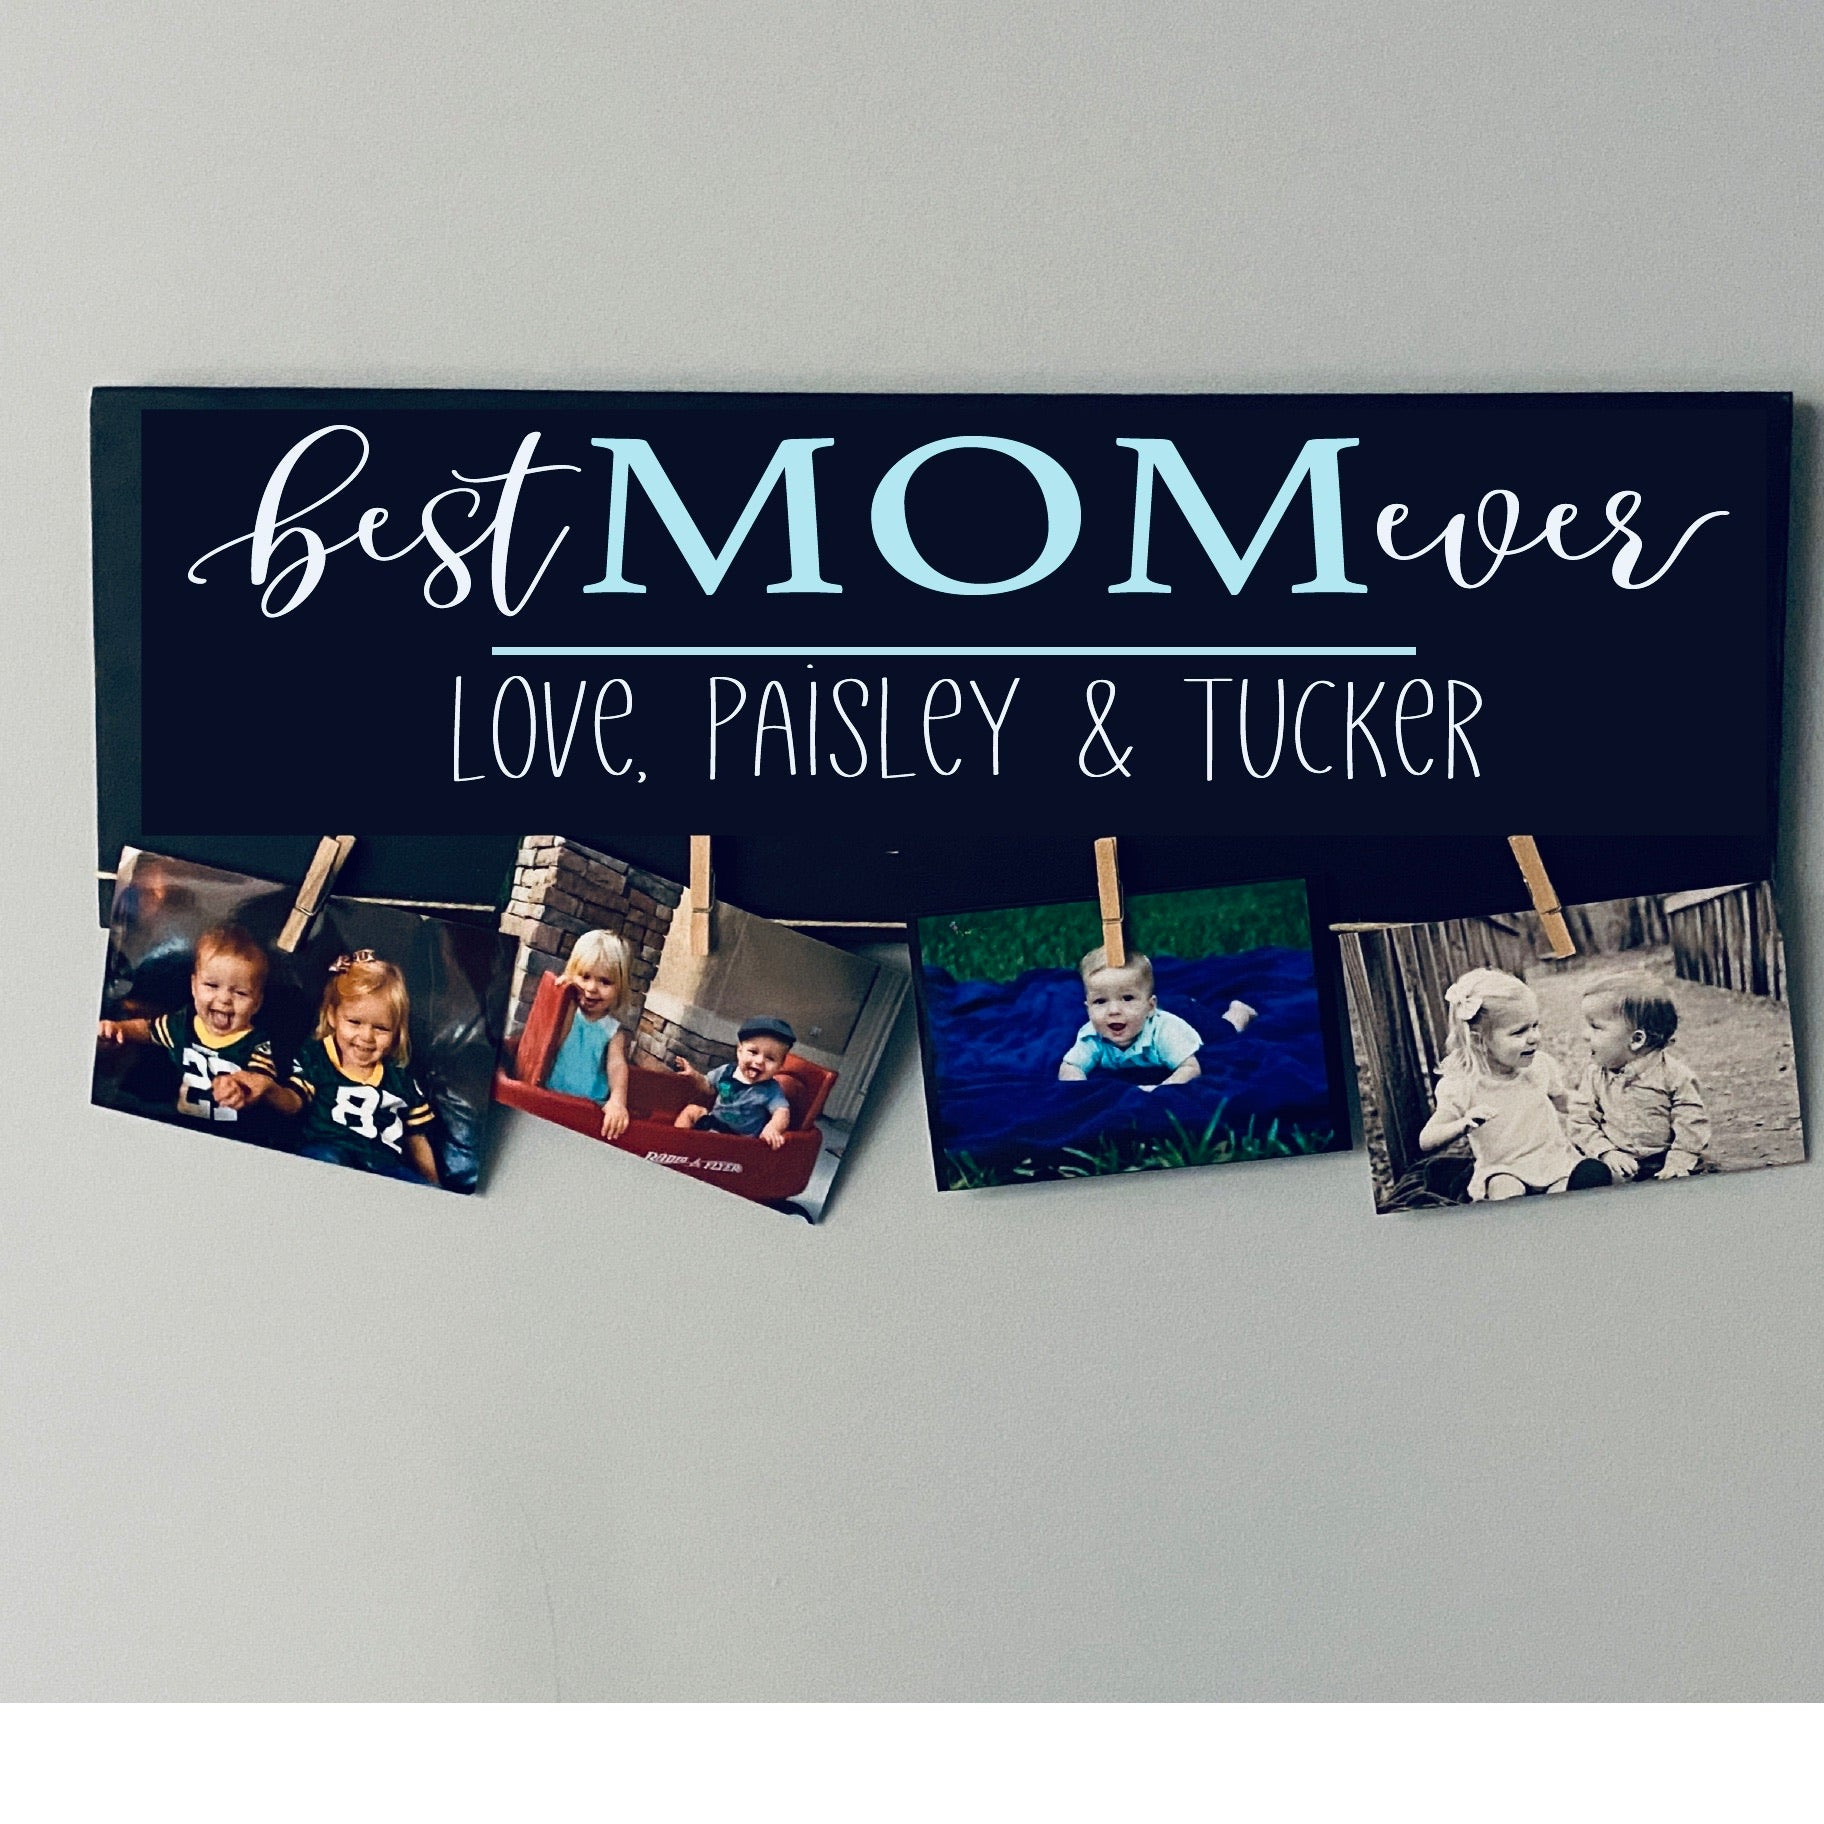 Best Mom Ever (personalized) Photo Holder: PLANK DESIGN - Paisley Grace Designs